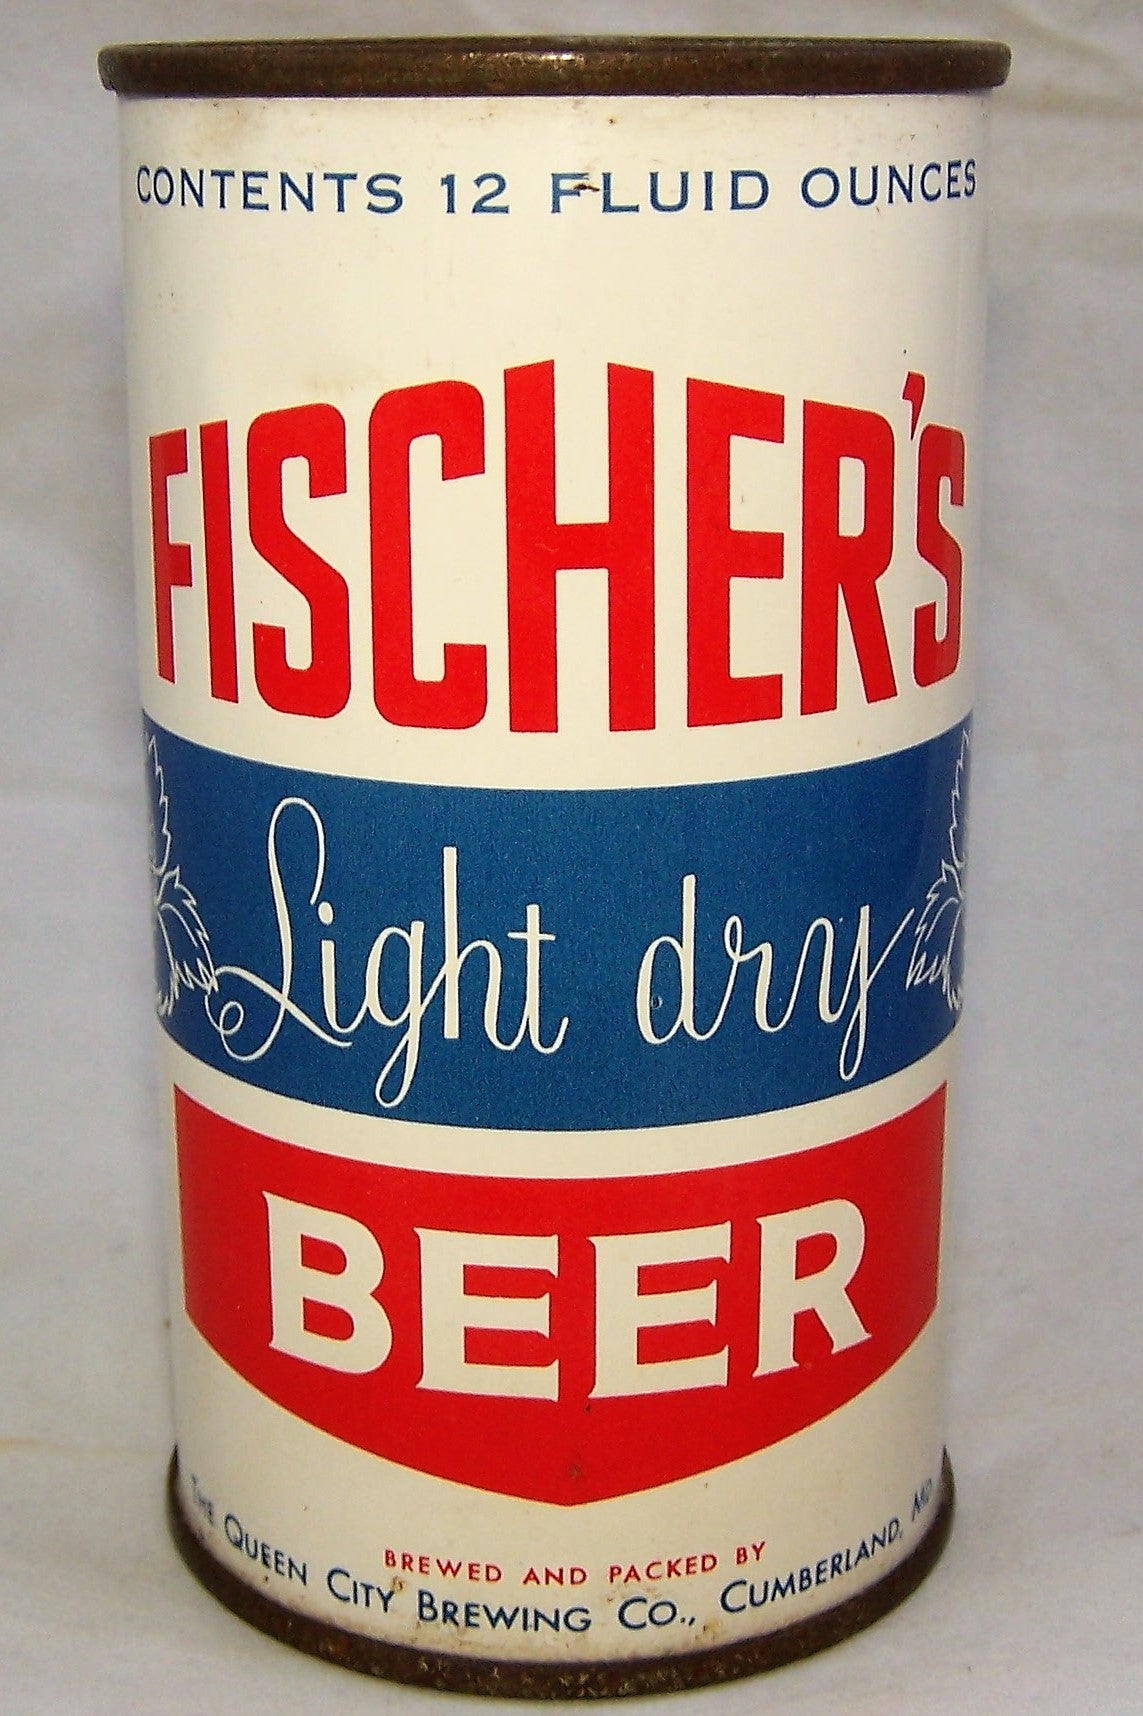 Fischer's Light Dry Beer grade 1